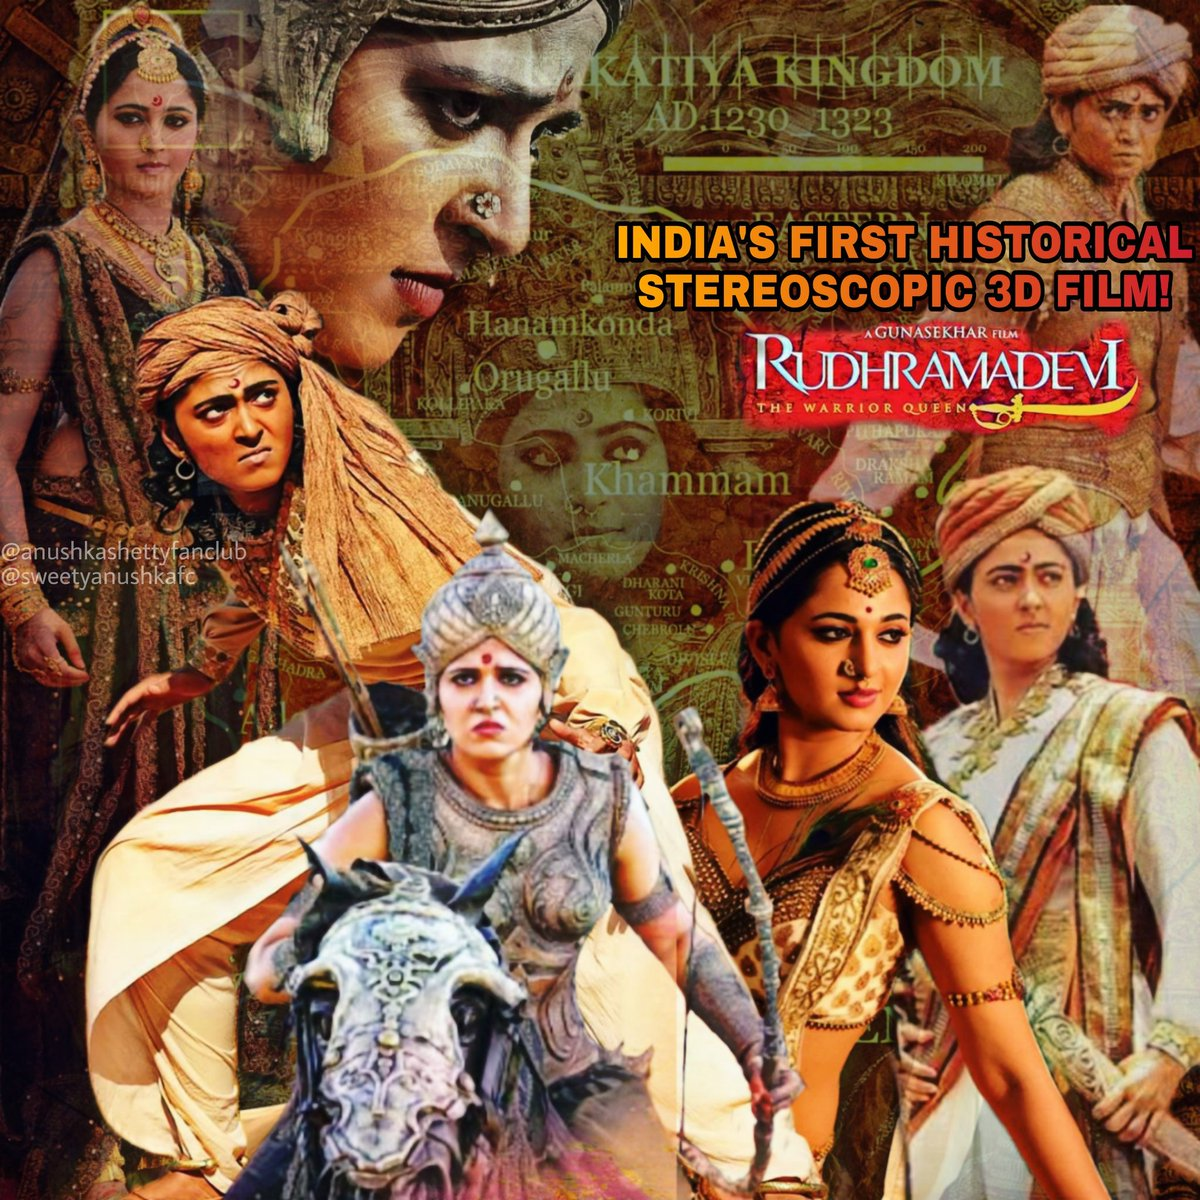 3 Years for Indias 1st Historical Stereoscopic 3D Film, Epic Drama, RUDHRAMADEVI!! Most of the movie, Anushka is shown as Rudhradeva, the Princess disguised as Prince; her performance is iconic and par excellence! Thank you @Gunasekhar1 garu & team #3YearsForAnushkaRudhramadevi